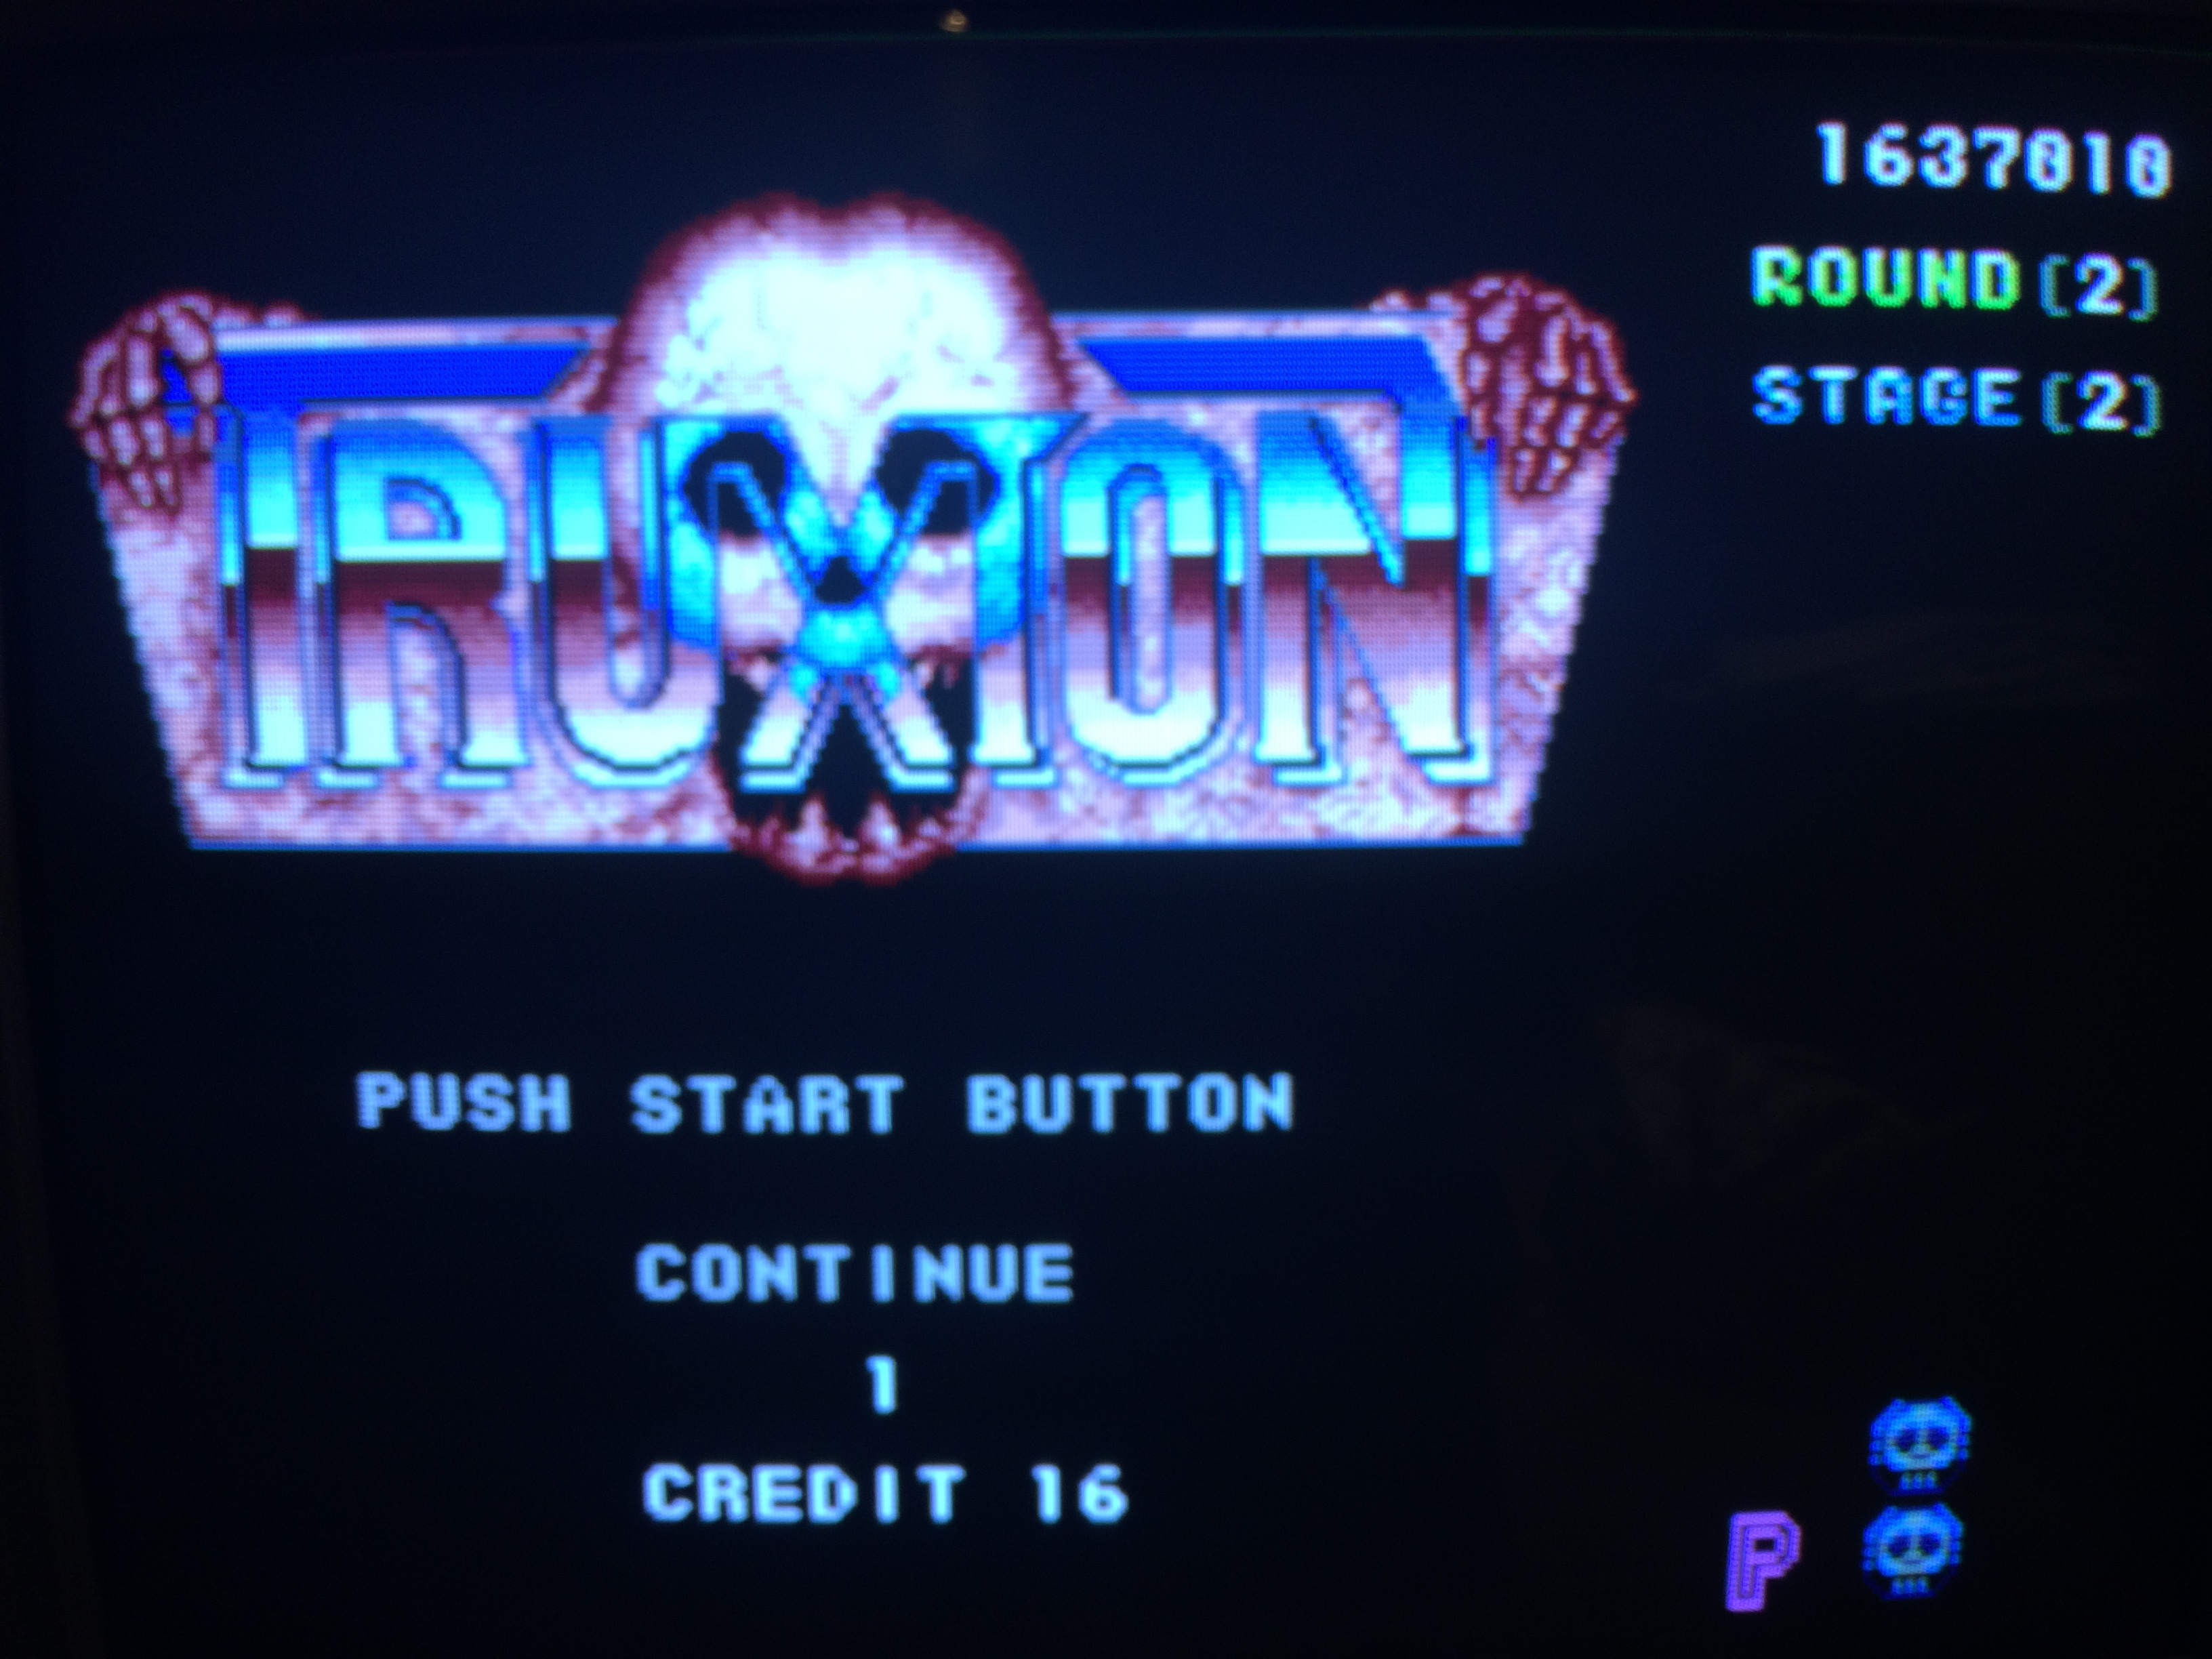 Truxton: Normal 1,637,010 points